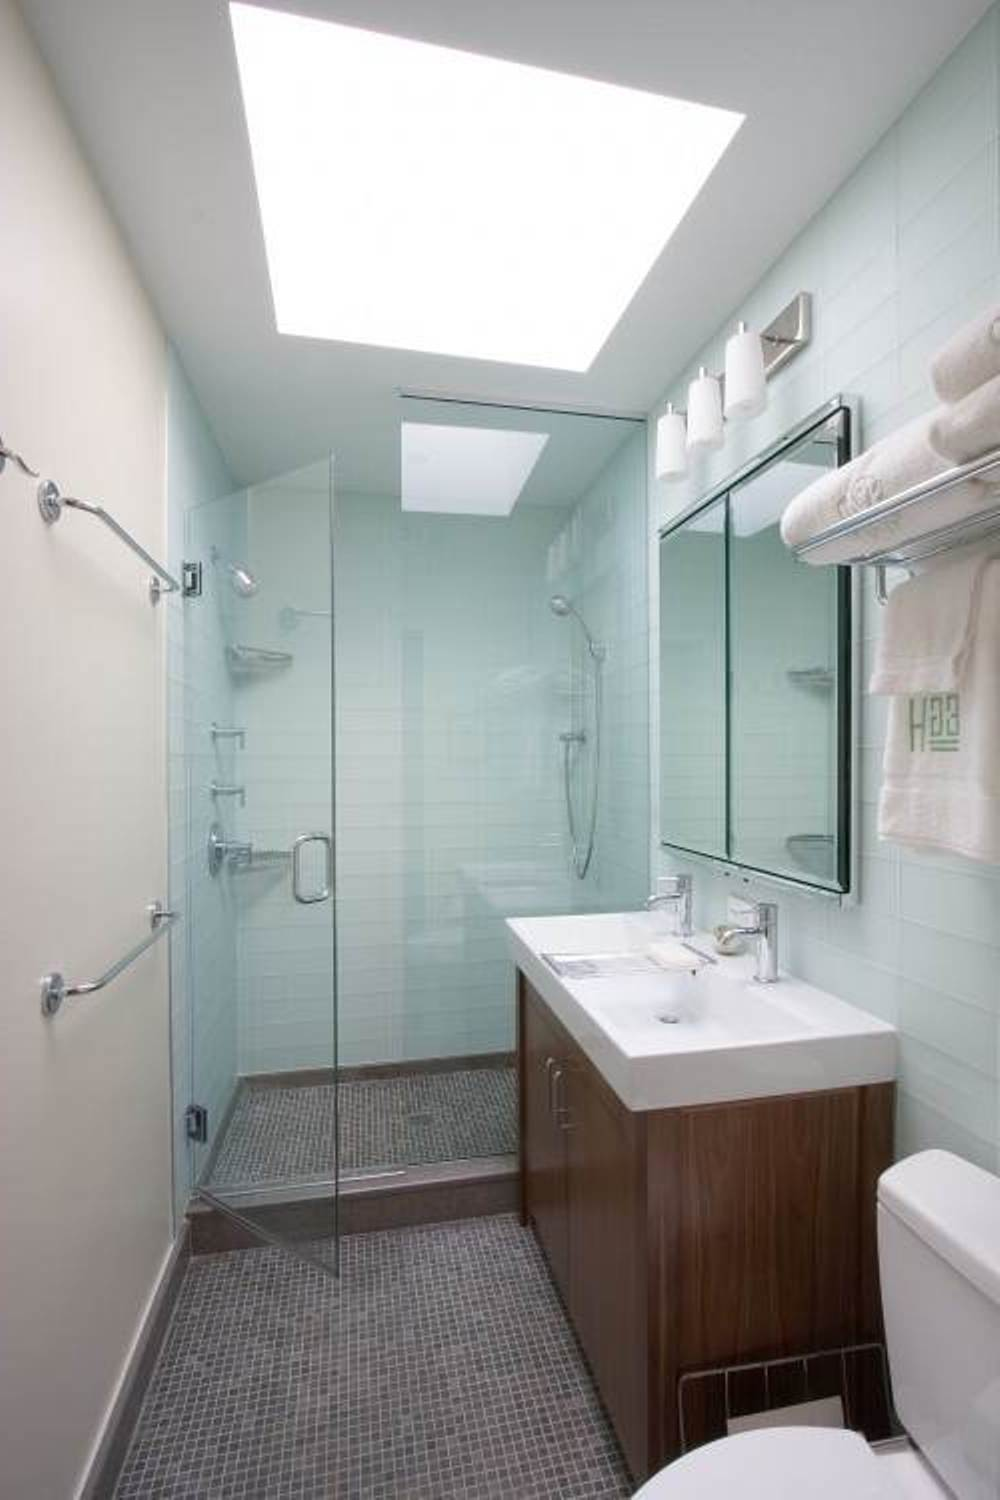 Small bathroom ideas photo gallery joy studio design for Compact bathroom design ideas